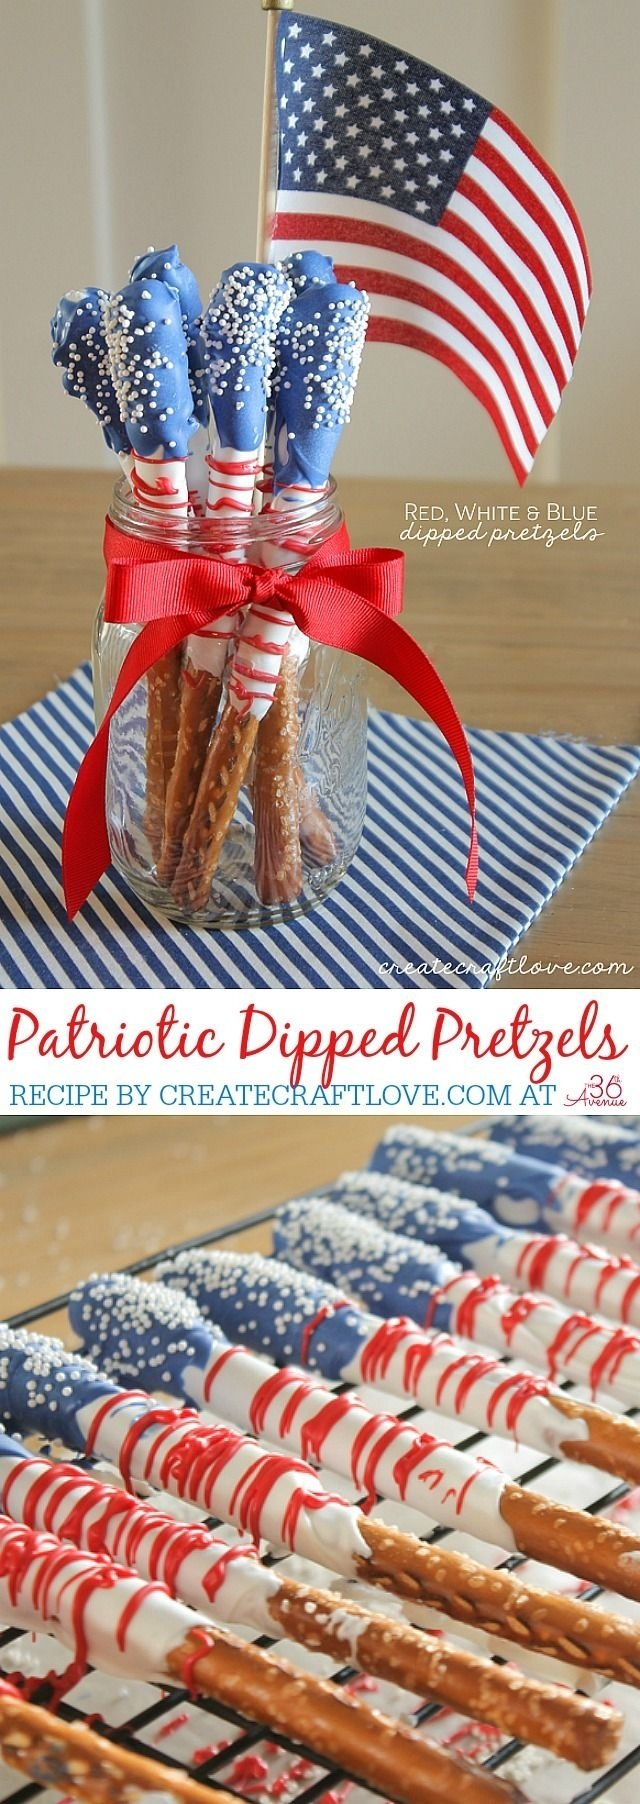 10 Amazing Fun 4Th Of July Ideas 547 best 4th of july images on pinterest 4th july desserts 4th of 2 2021